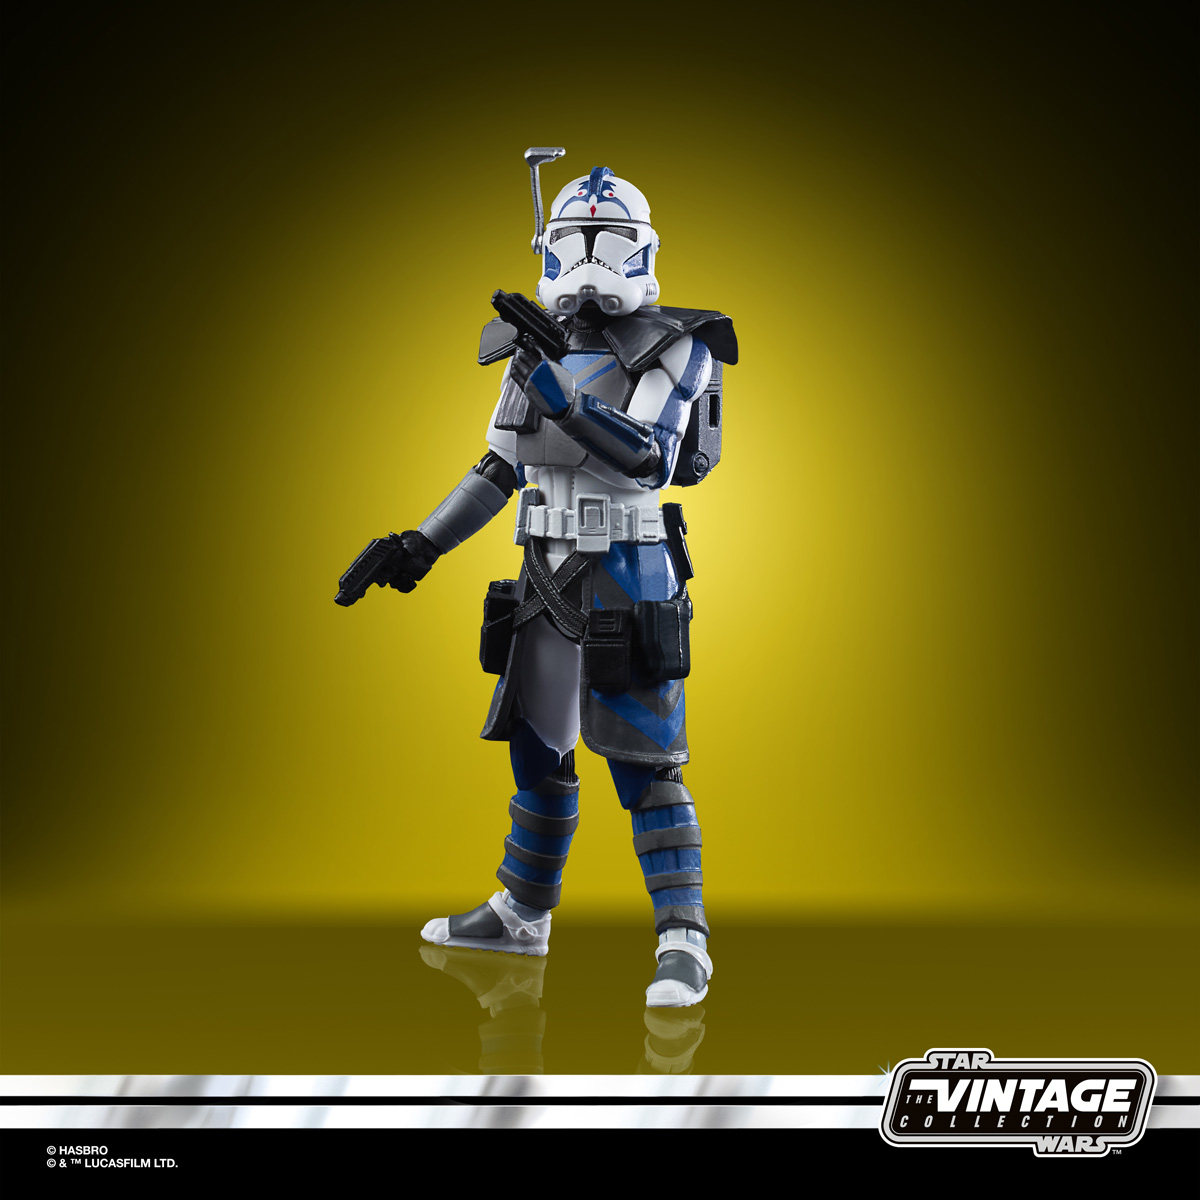 star-wars-the-vintage-collection-star-wars-the-clone-wars-501st-legion-arc-troopers-figure-3-pack-oop-3